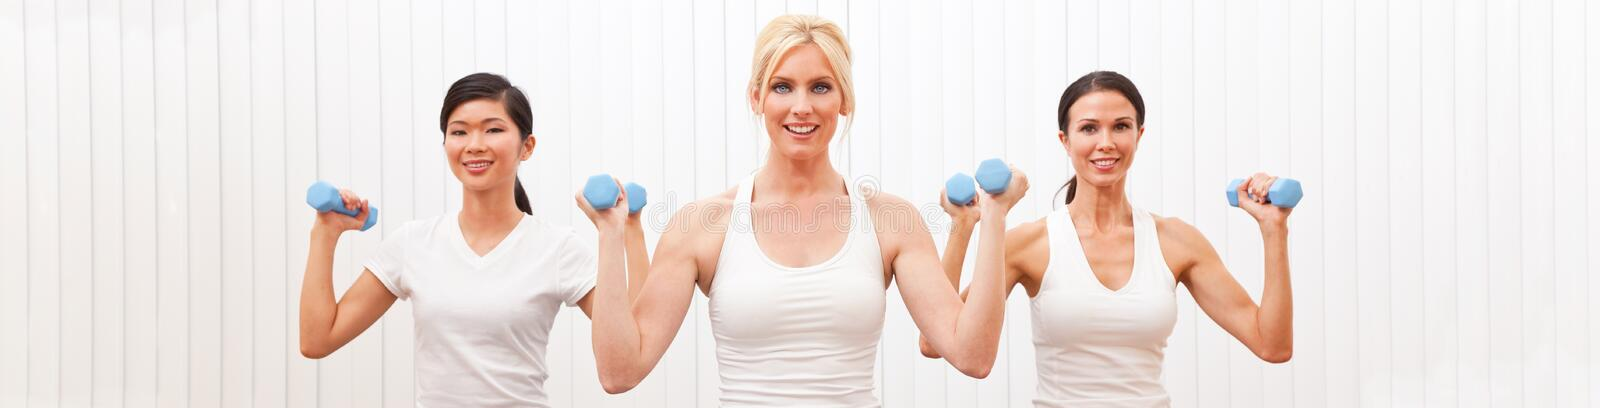 Panoramic Group of Three Women Weight Training Pilates royalty free stock photos